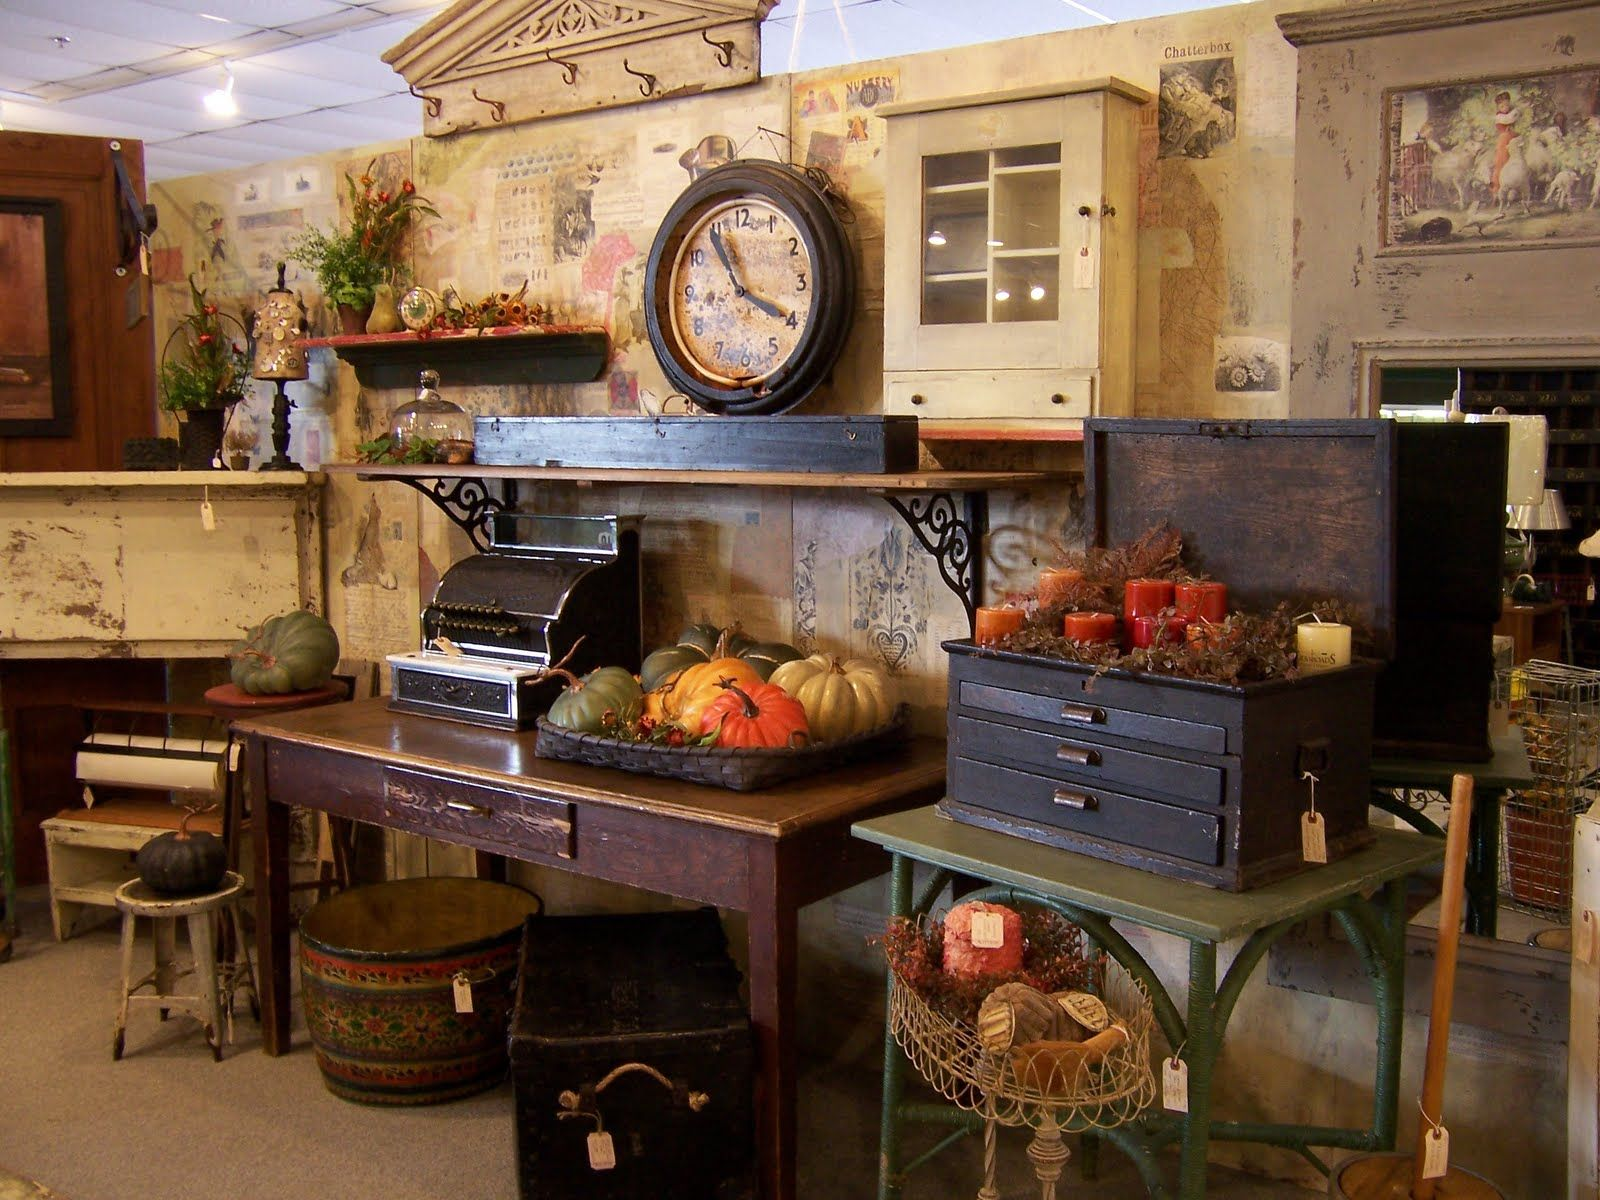 Guidone & Co. Antiques & Vintage Antique booth displays